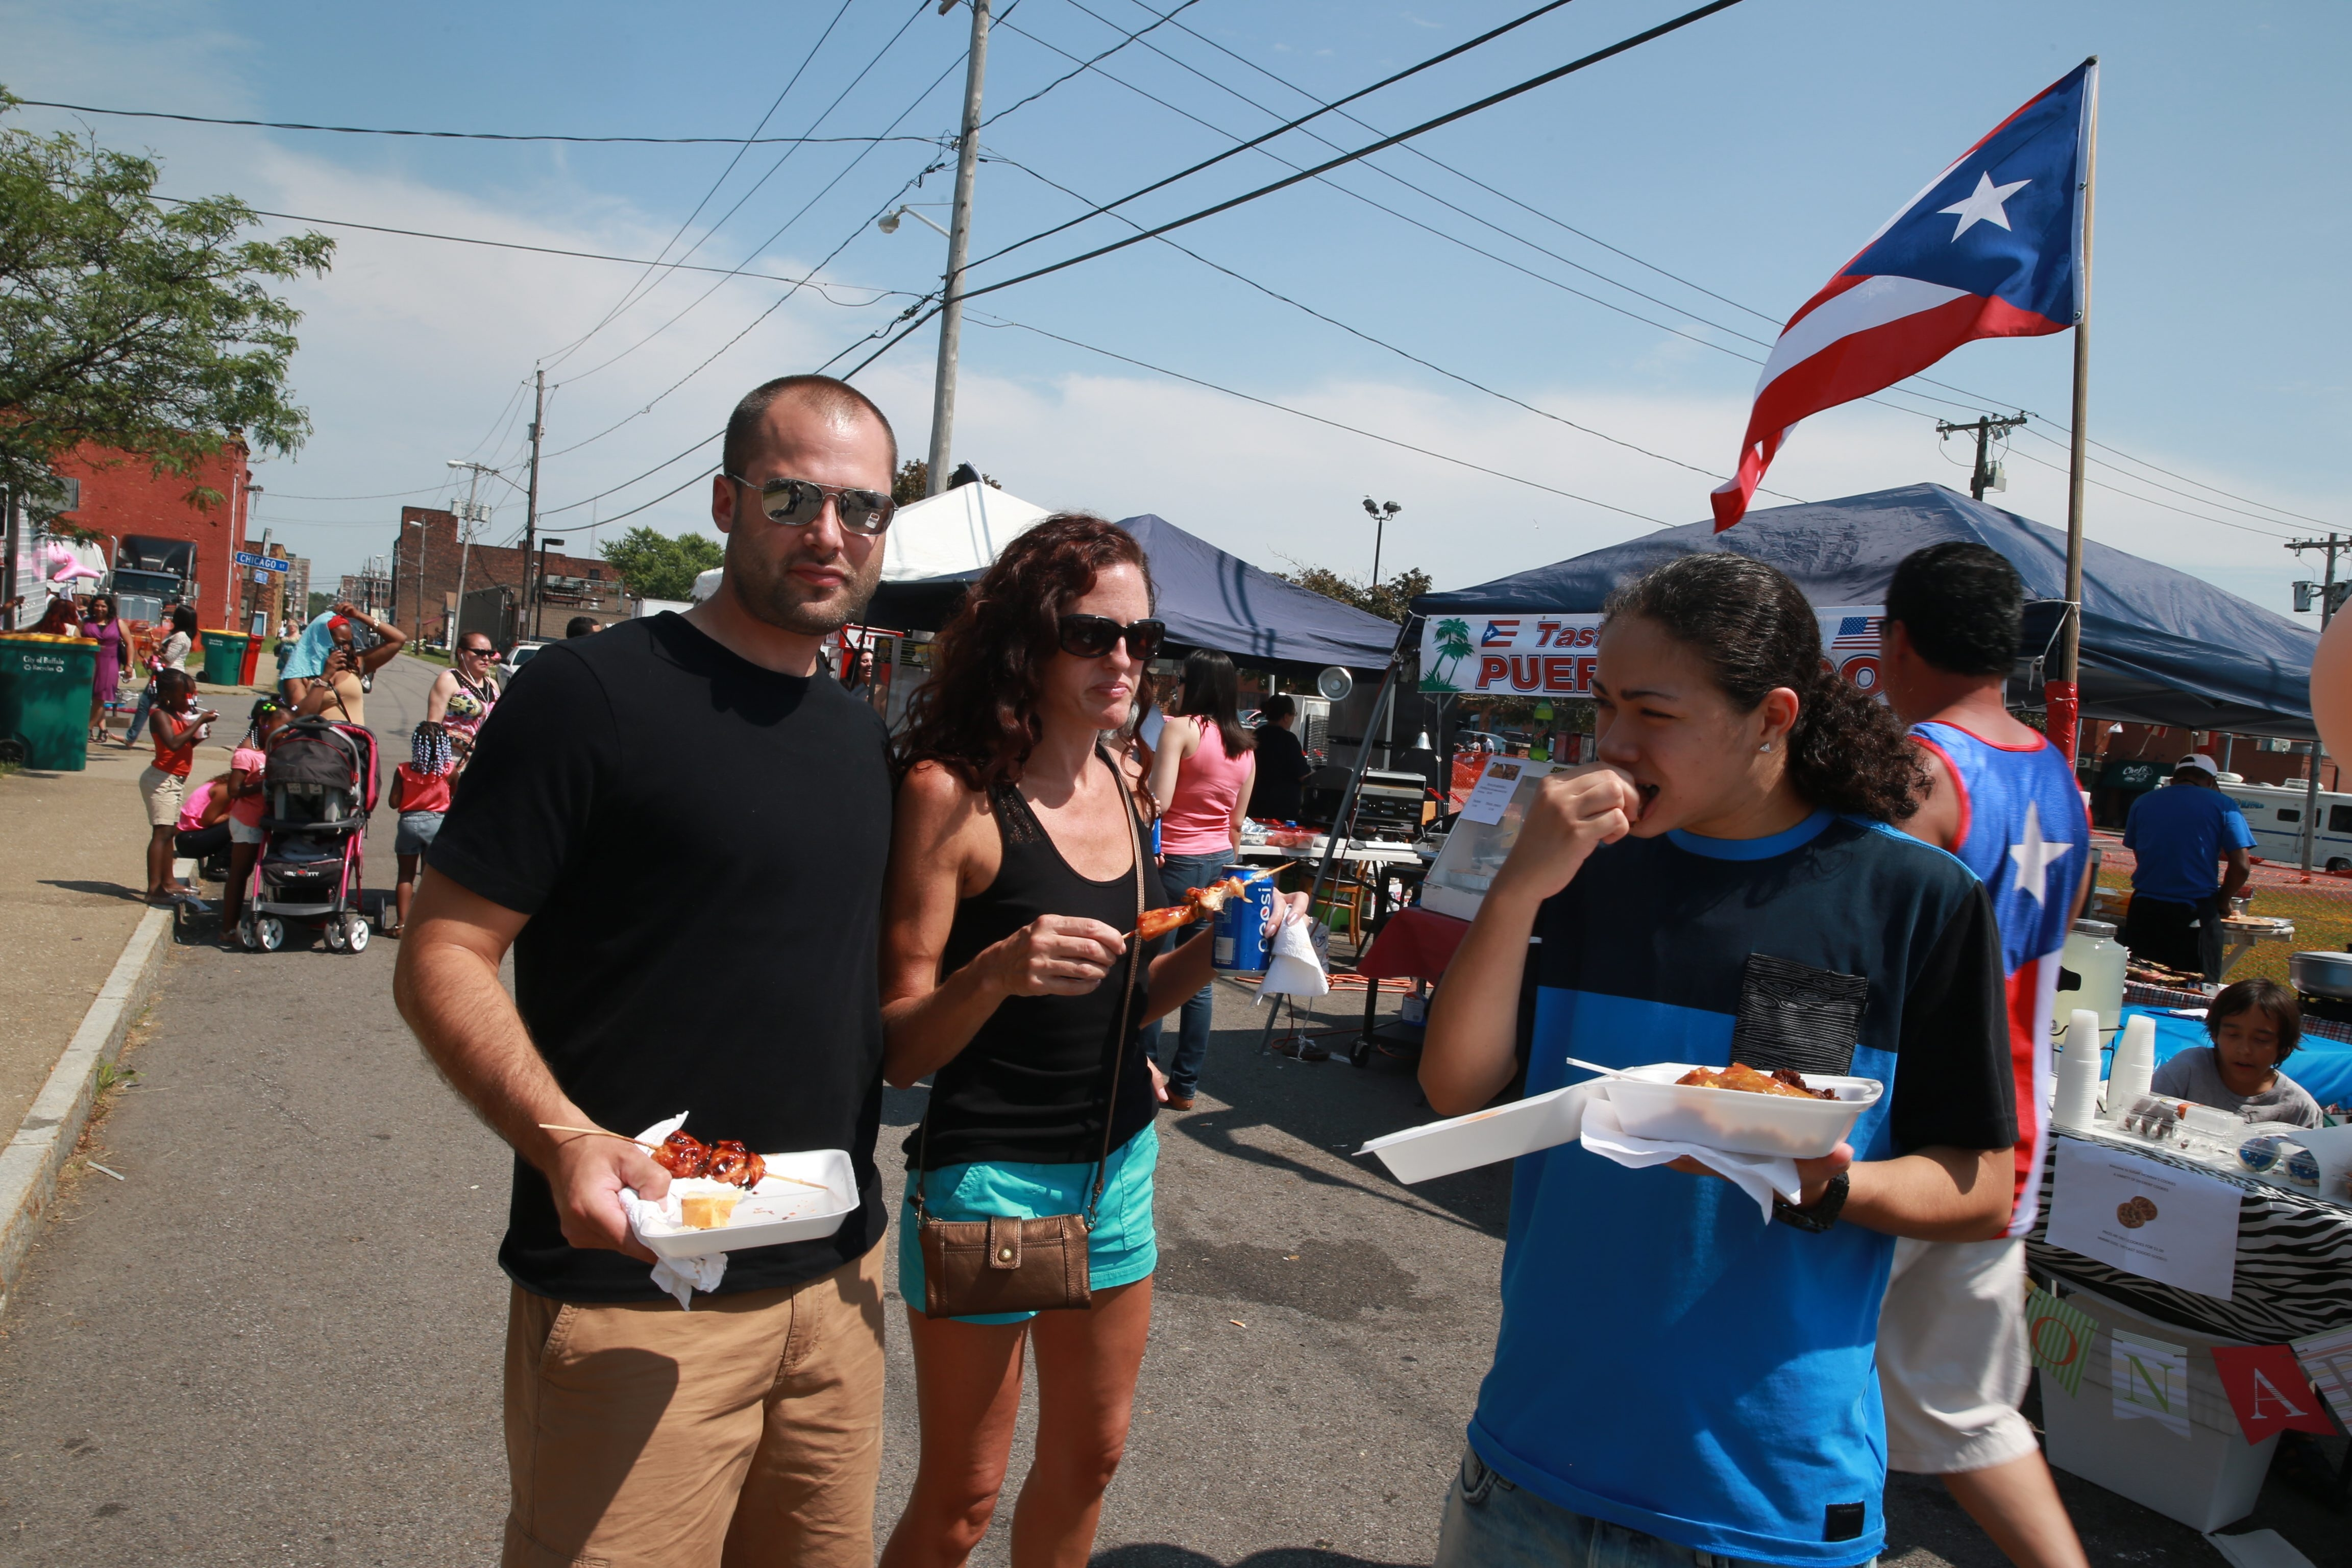 Scott Wheeler, left, his fiancée, Allison Hibbs, middle, and their niece Indalis Santiago of Depew munch on some food at the Grease Pole Festival, a three-day event that celebrates Puerto Rican and Hispanic hertitage. See more photos from the festival at buffalonews.com/galleries.